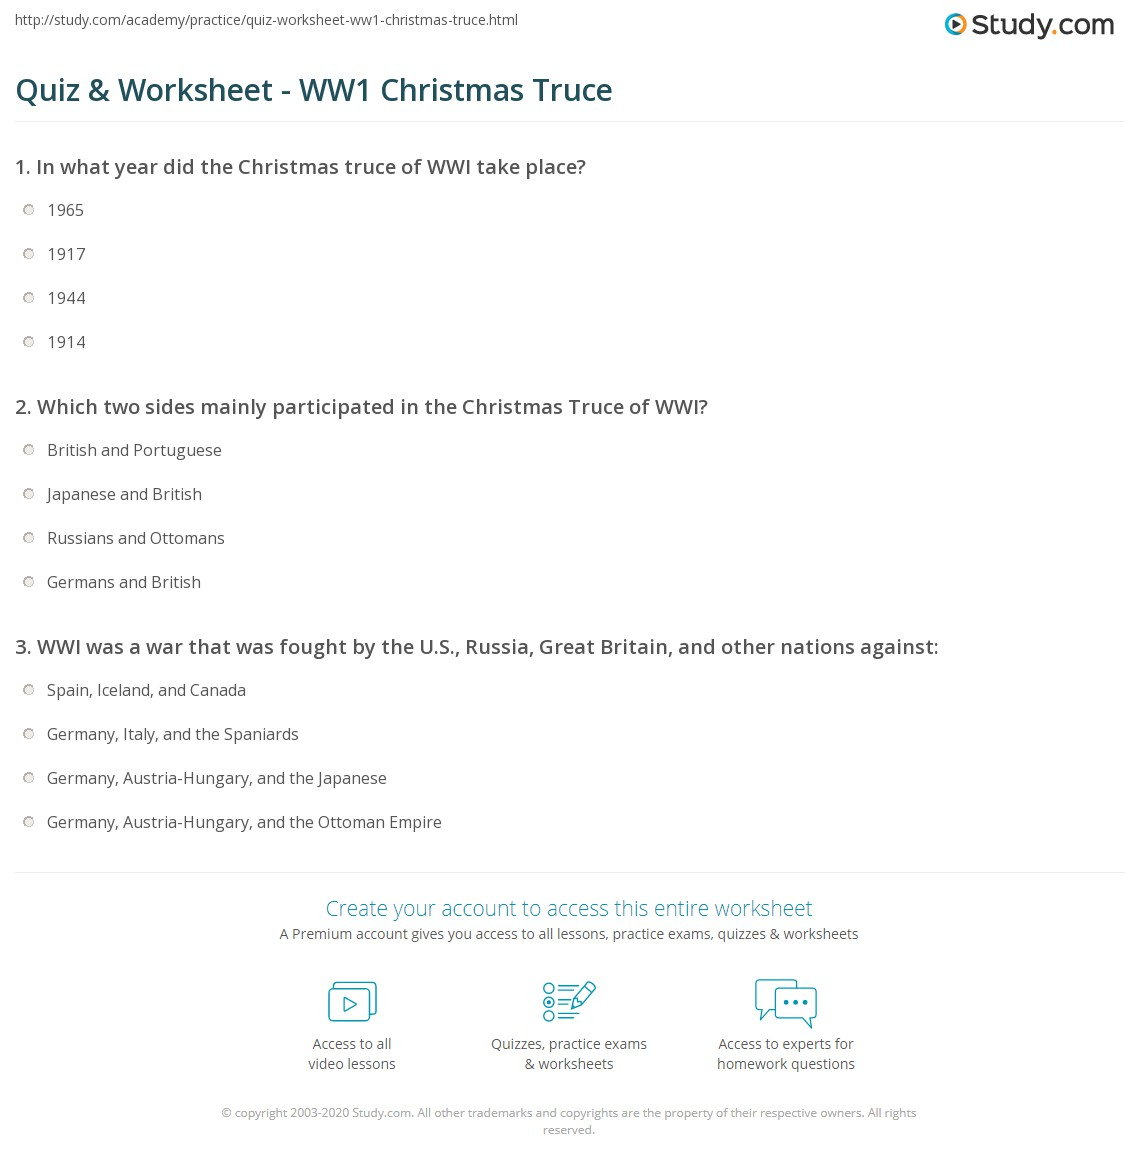 Quiz & Worksheet - Ww1 Christmas Truce | Study